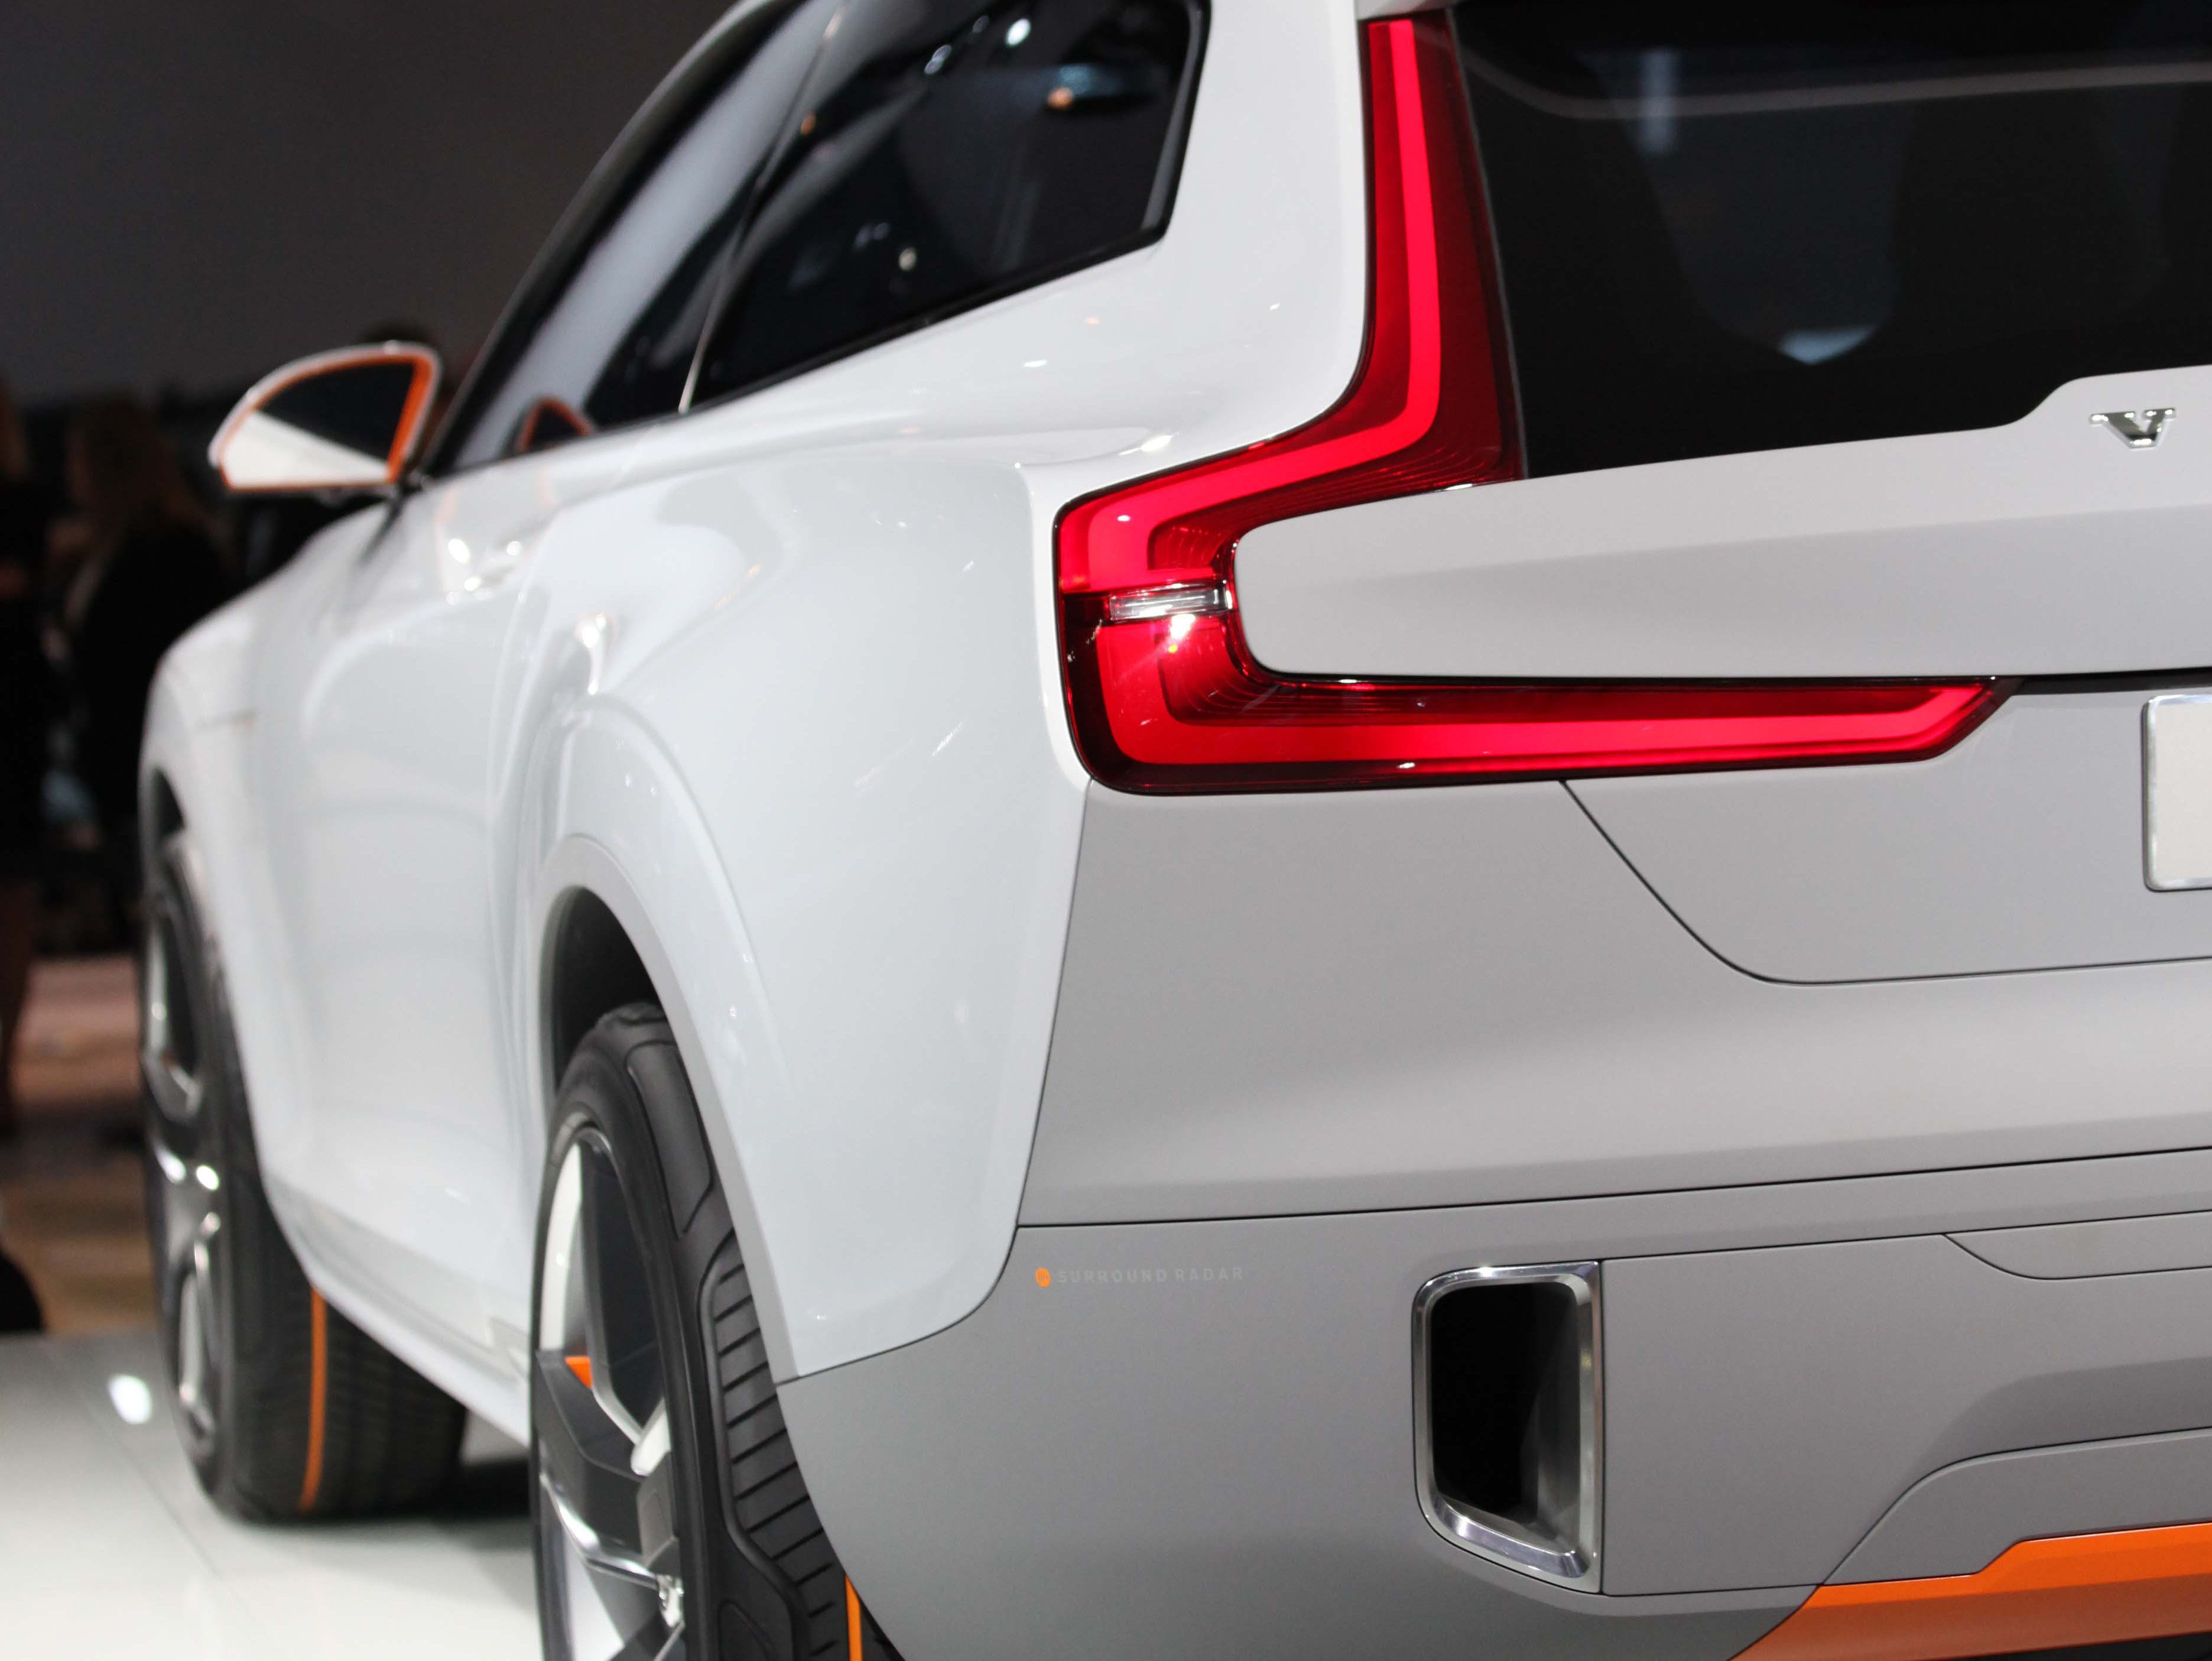 Rear view of the Volvo XC Coupe Concept revealed during the 2014 North American International Auto Show held at Cobo Center in downtown Detroit on Monday, Jan. 13, 2014.